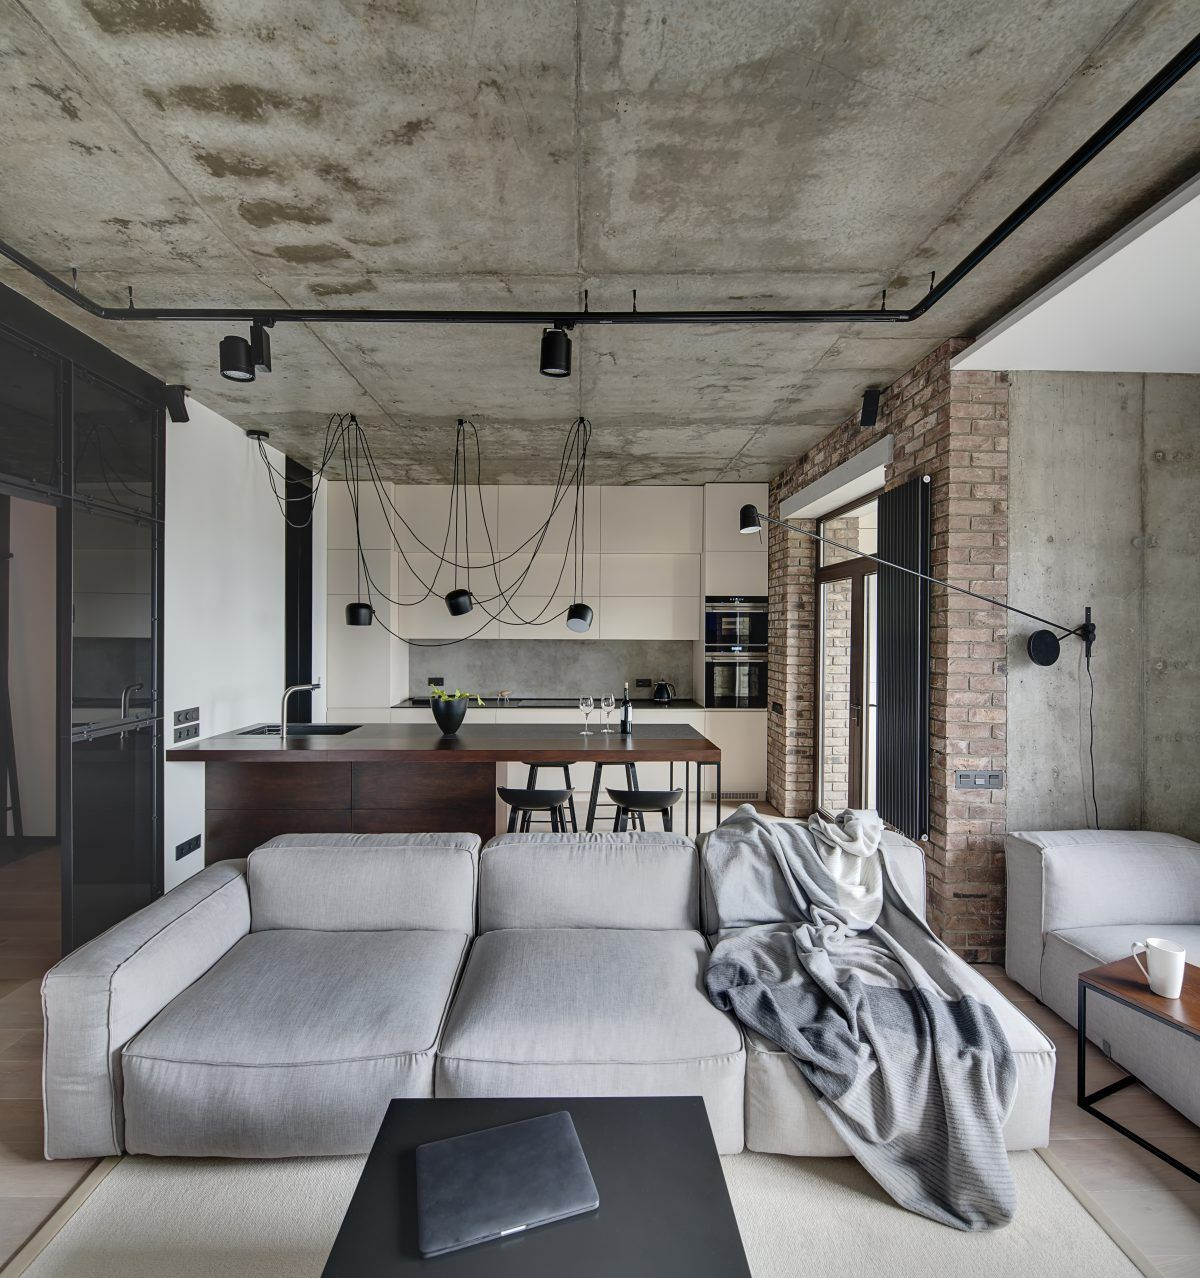 Schlafzimmer Loft Style Living-room And A Kitchen Zone In A Loft Style With Concrete And Brick Walls. | Living Room Loft, Minimalist Living Room, Loft Interiors